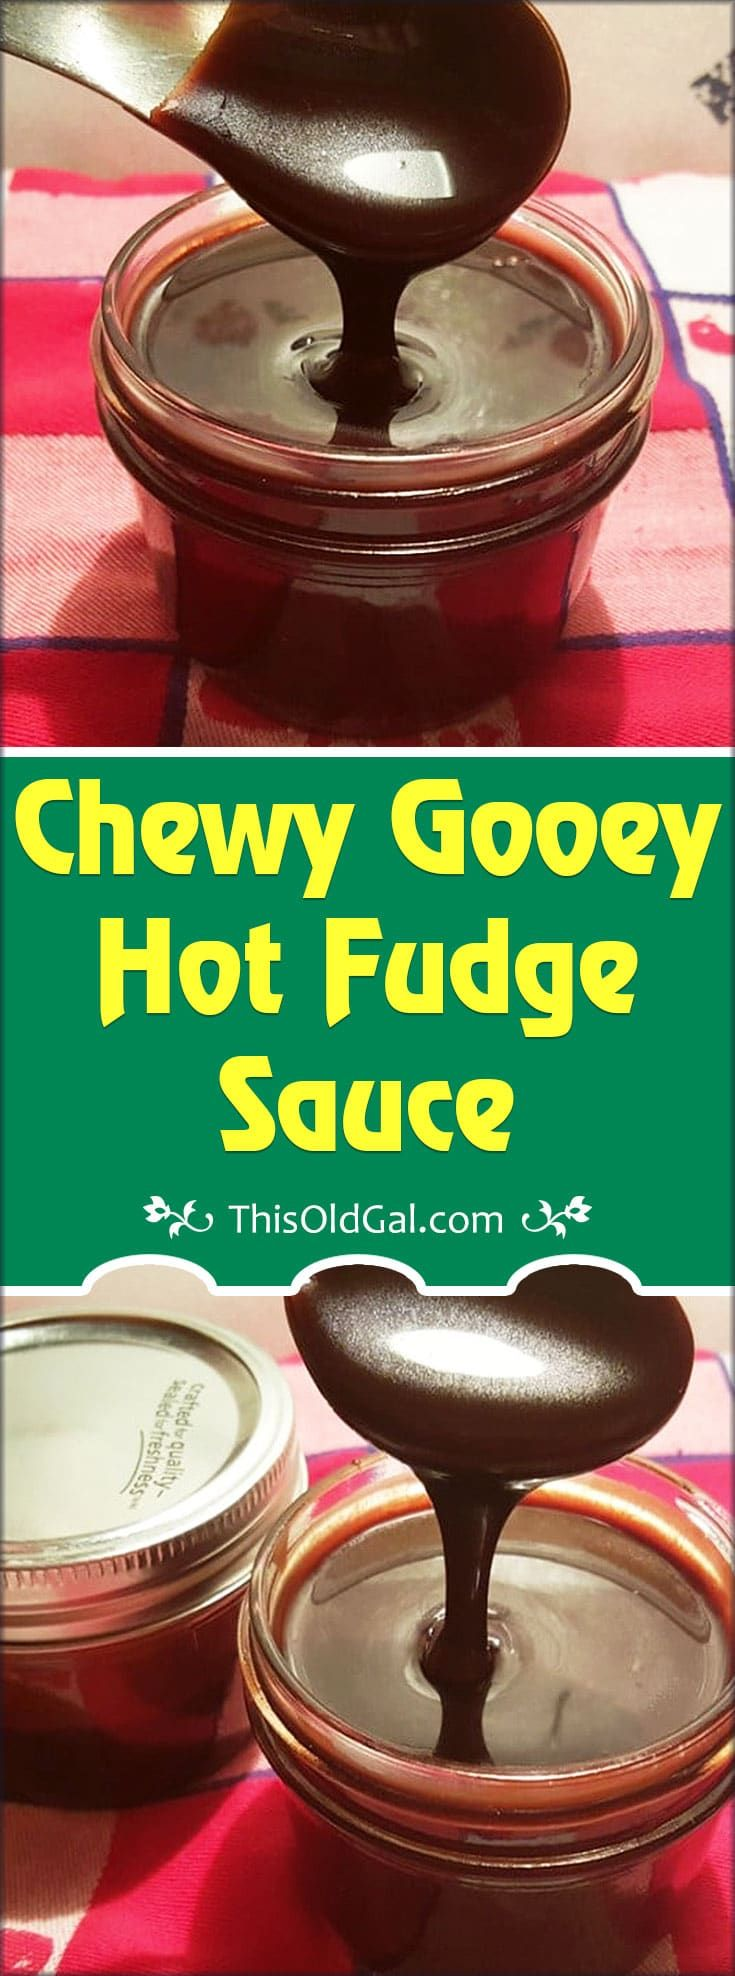 Chewy Gooey Hot Fudge Sauce is rich and buttery chocolate that turns chewy when poured over ice cream. via @thisoldgalcooks